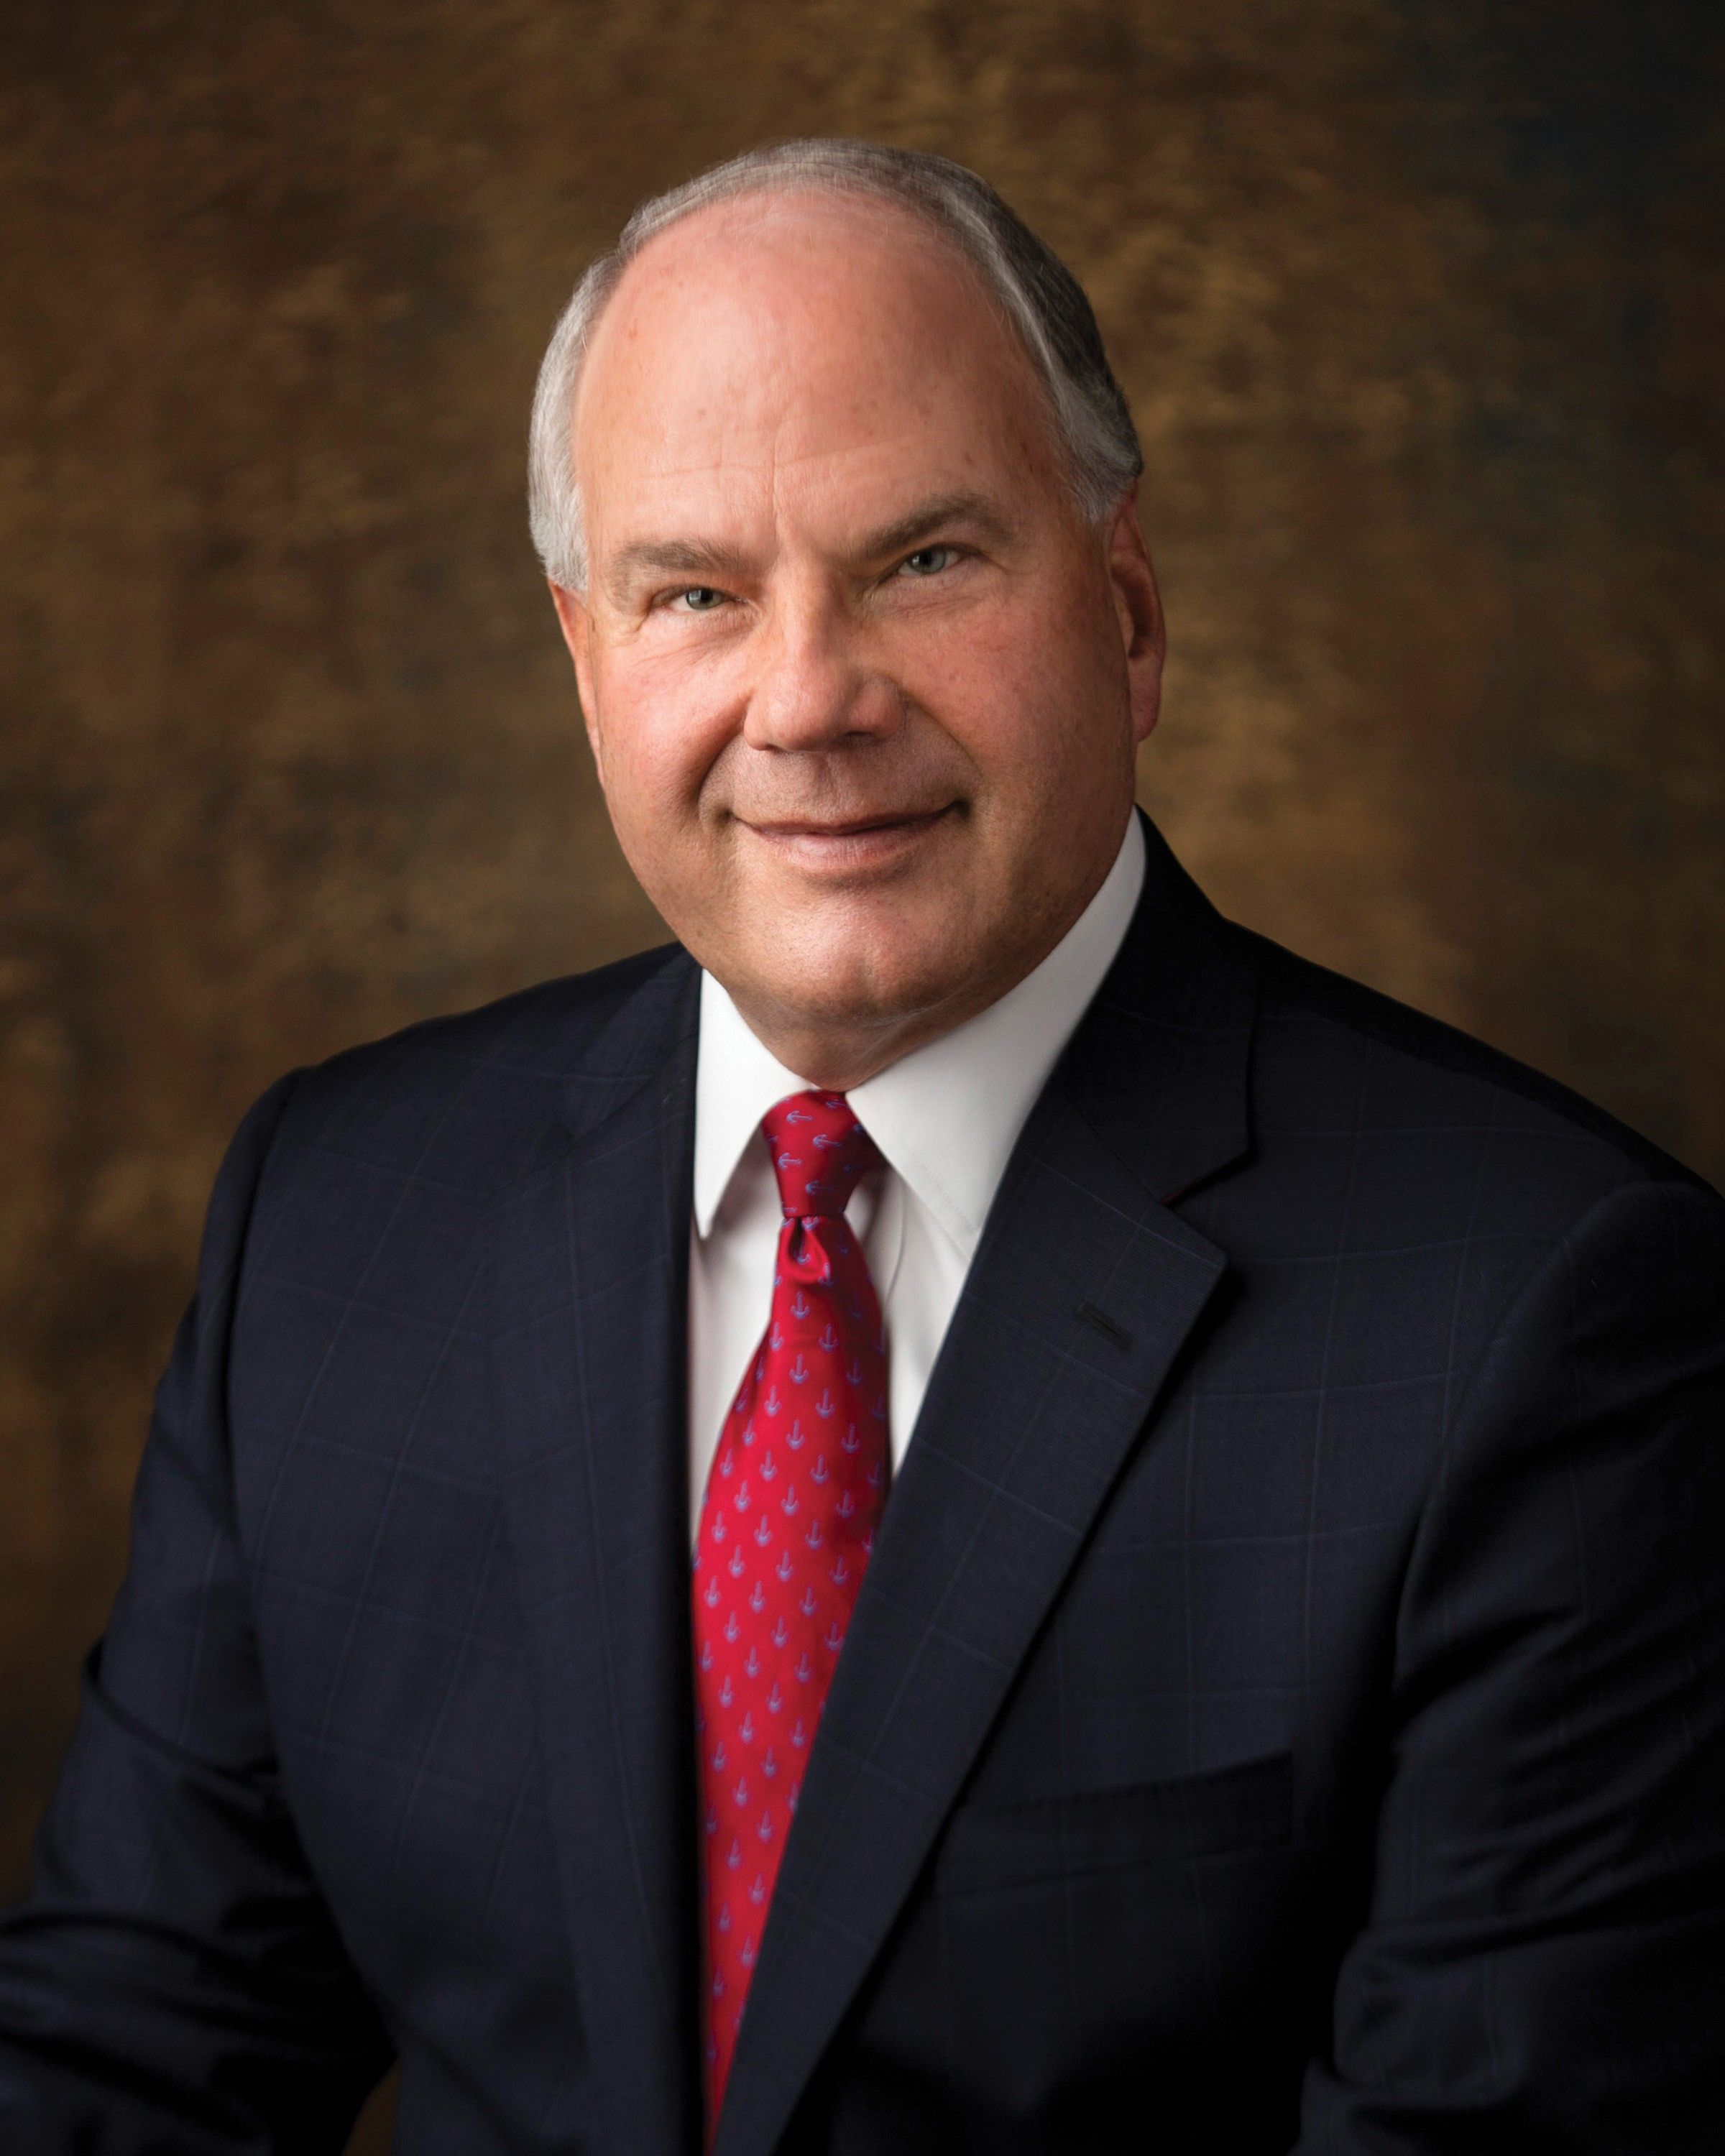 The official portrait of Ronald A. Rasband.